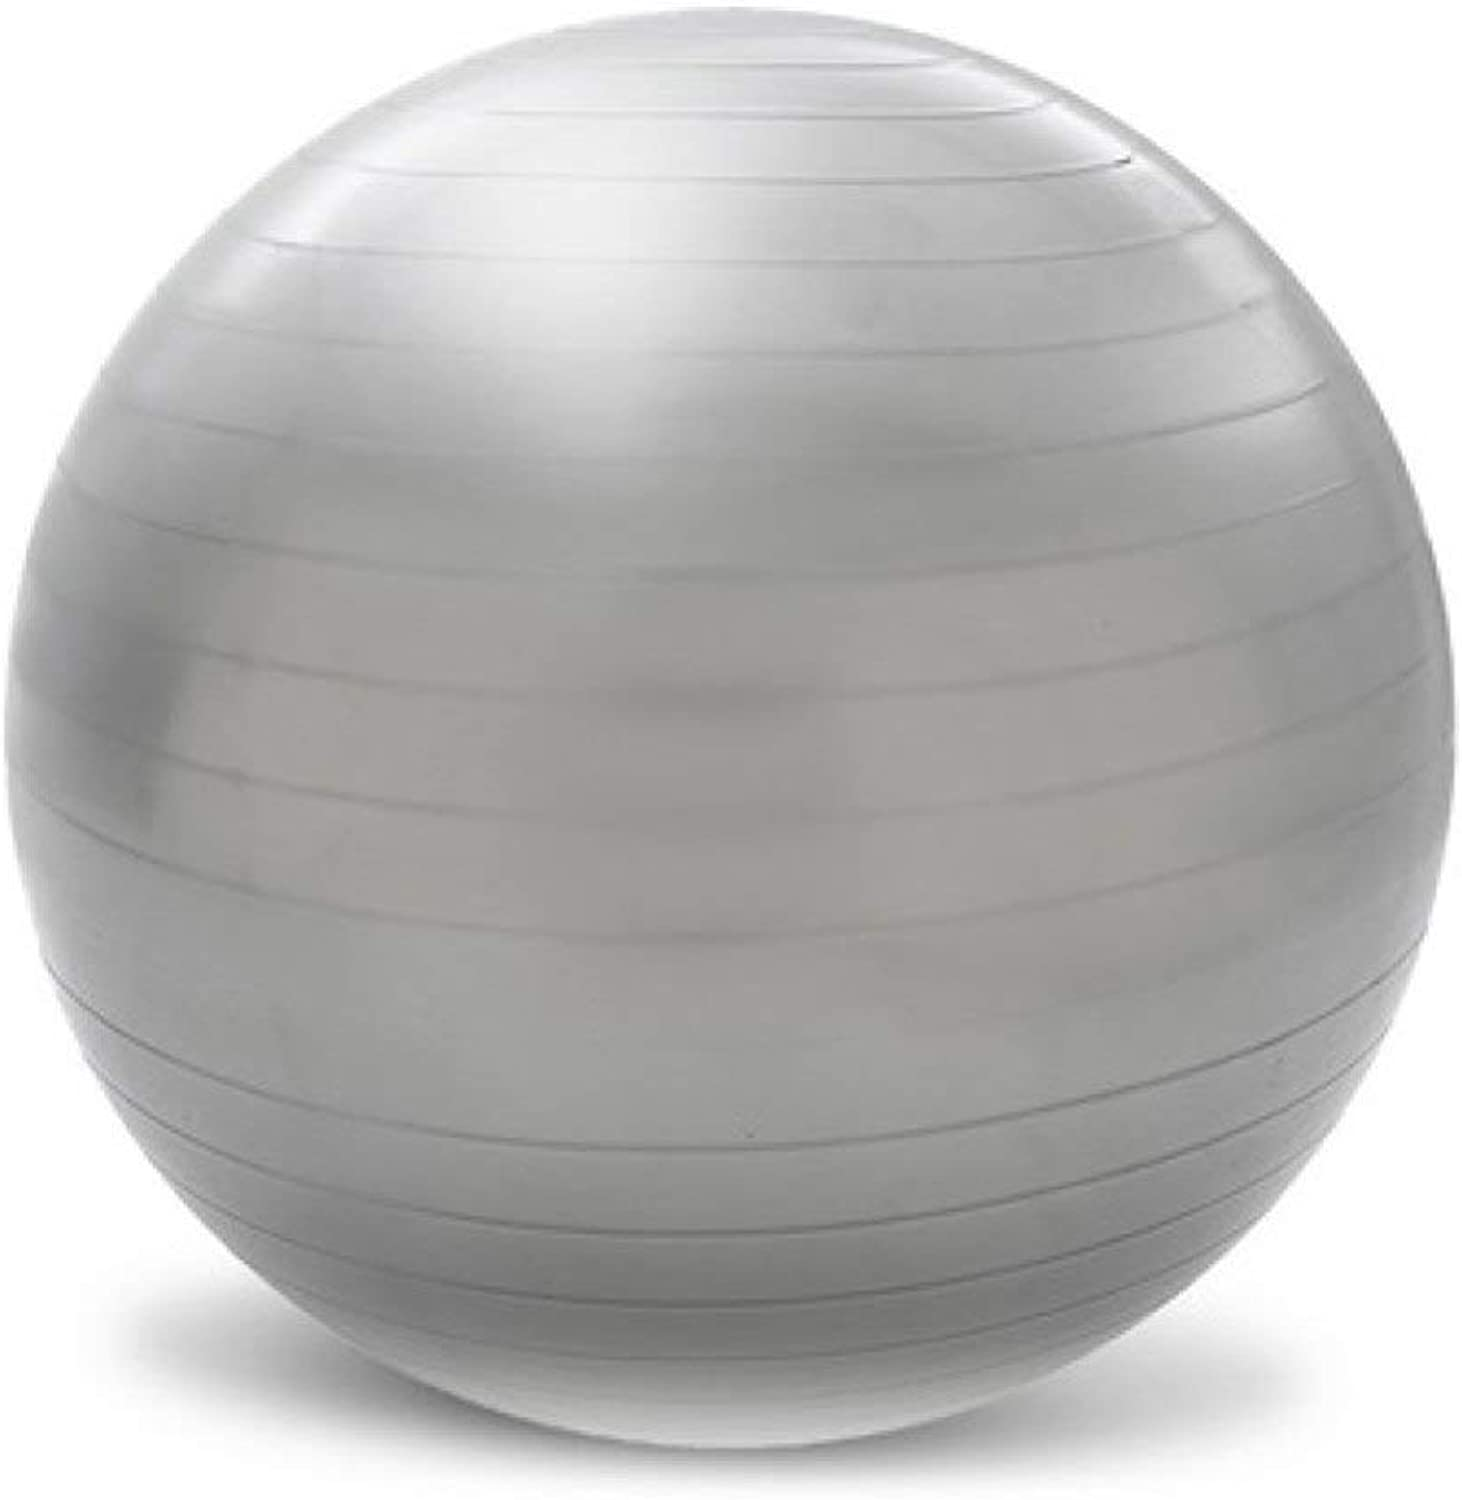 YKXIAOSI Yoga Ball ExplosionProof Yoga Ball Inflatable Yoga Ball PVC Yoga Ball Yoga Ball (with Pump)